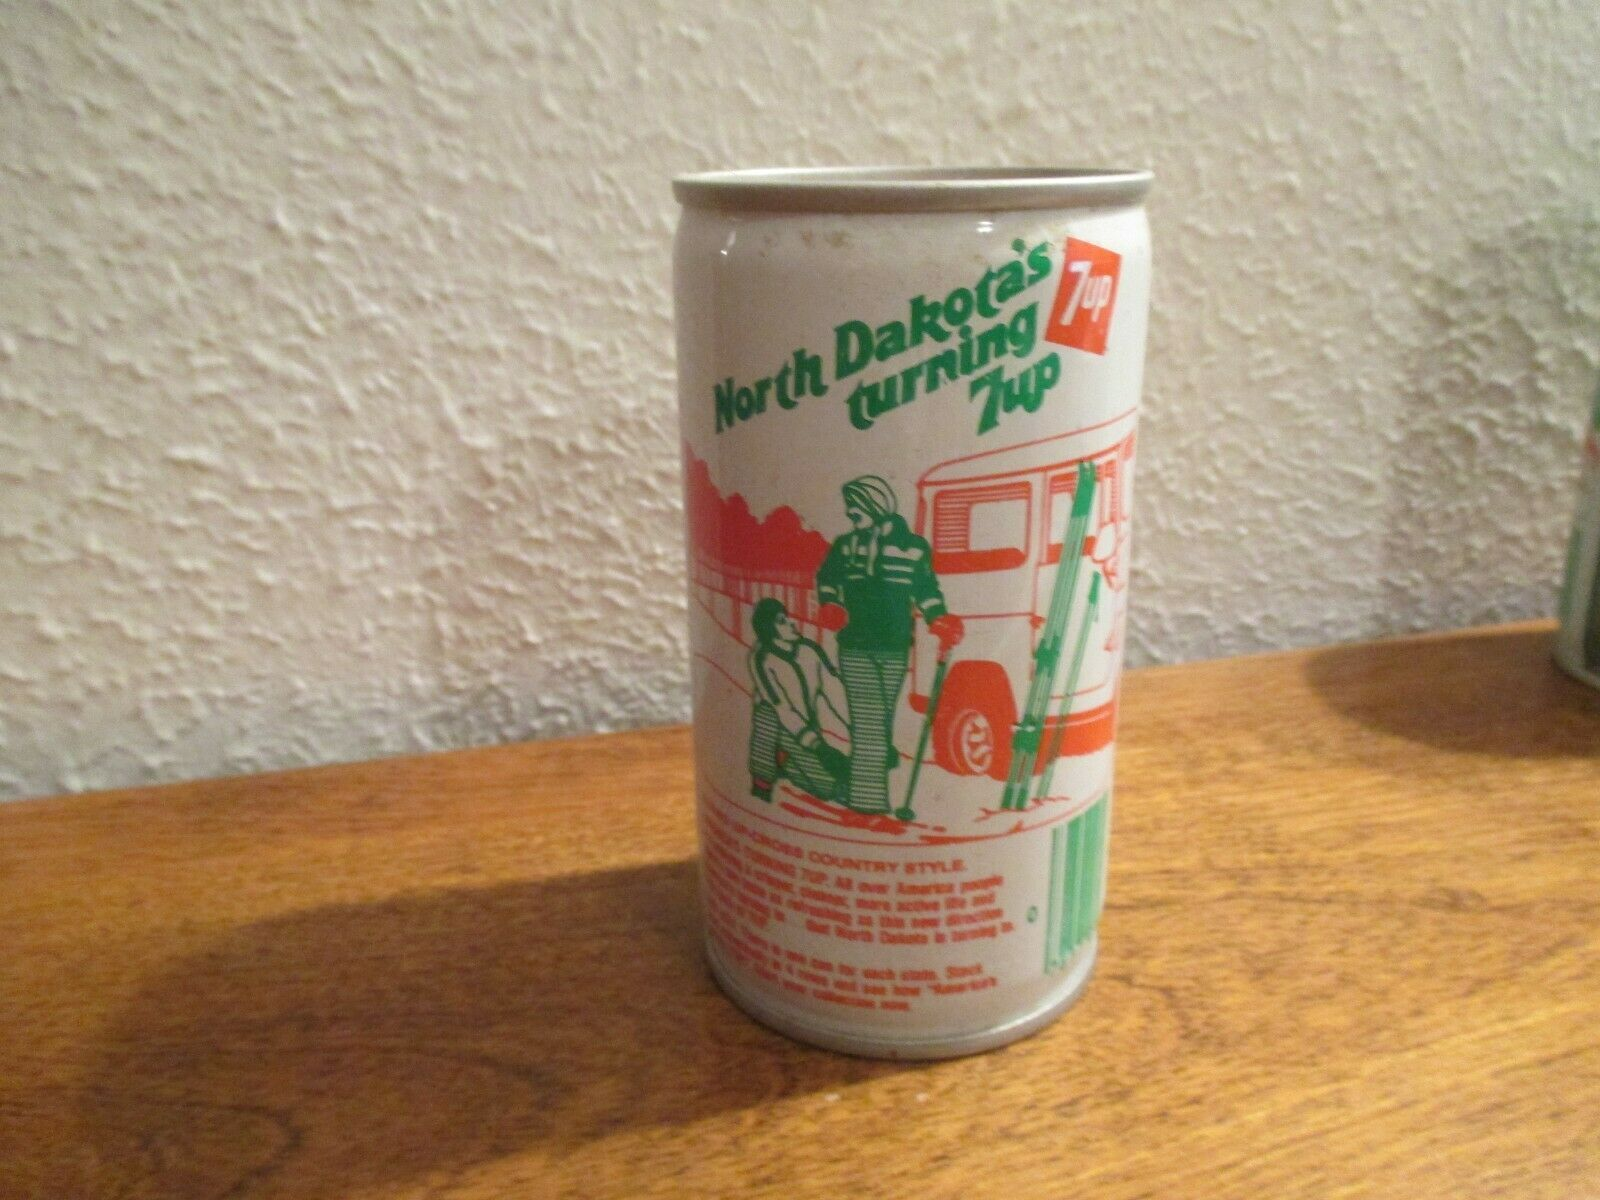 Primary image for North Dakota ND Turning 7up vintage pop soda metal can Cross Country Skiing